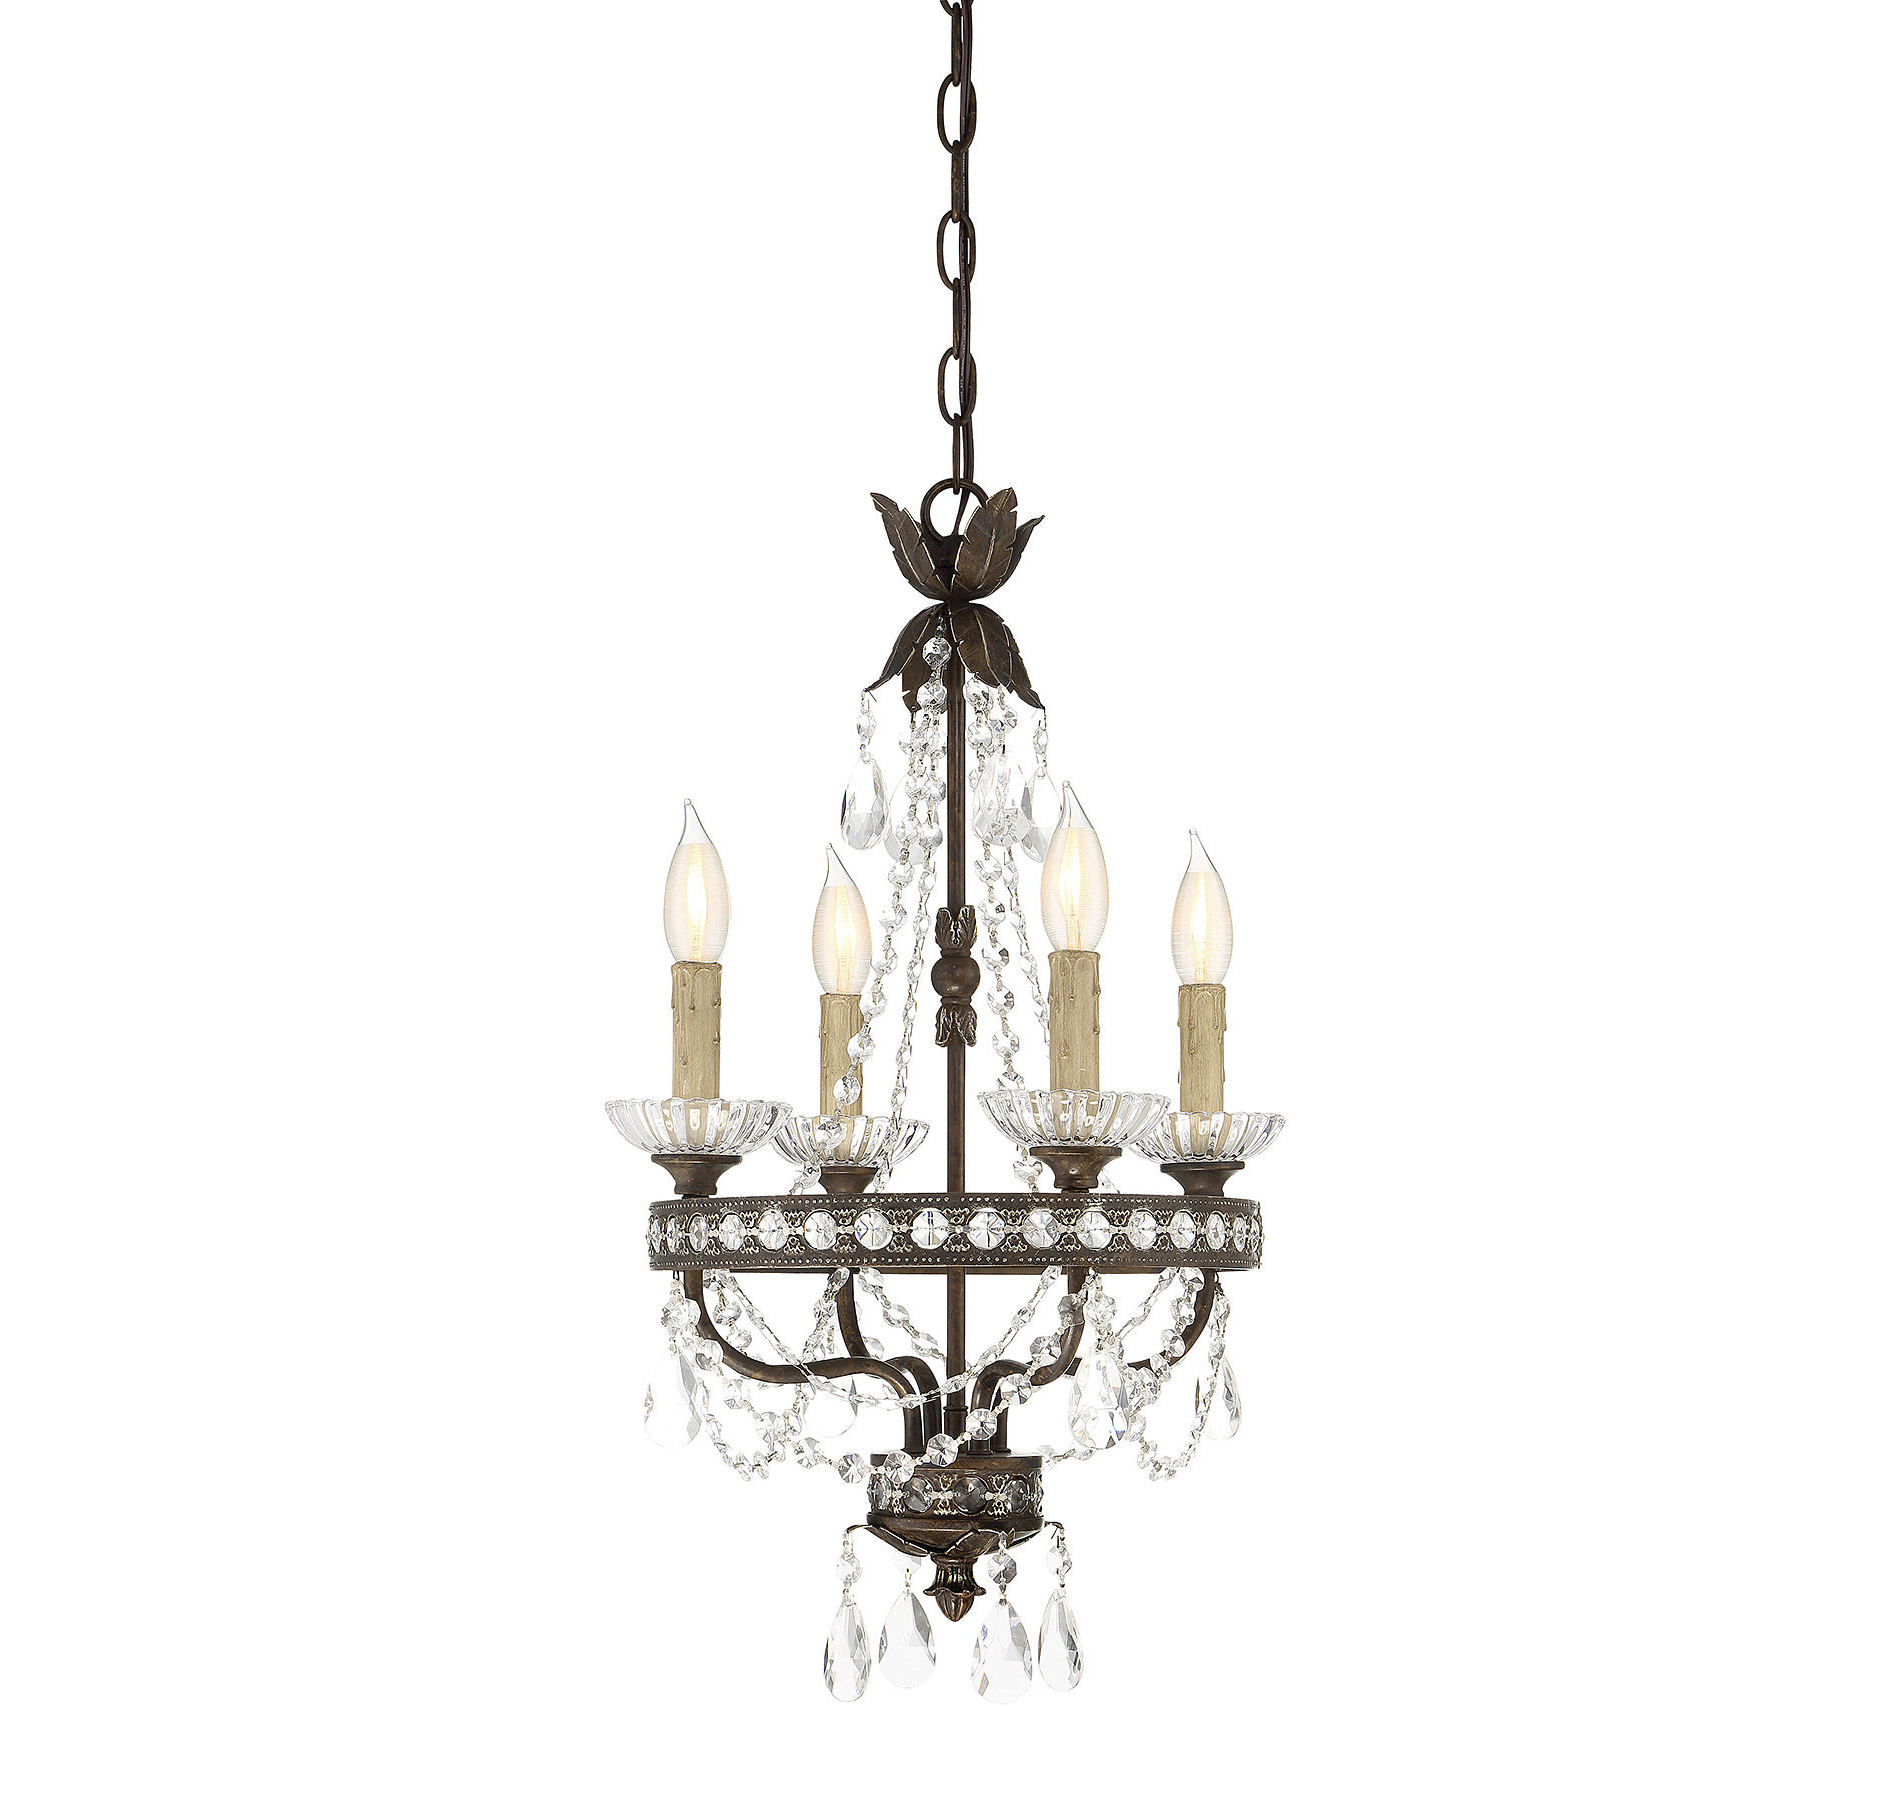 Hesse 5 Light Candle Style Chandeliers With Most Current Lefler 4 Light Candle Style Chandelier (Gallery 15 of 20)